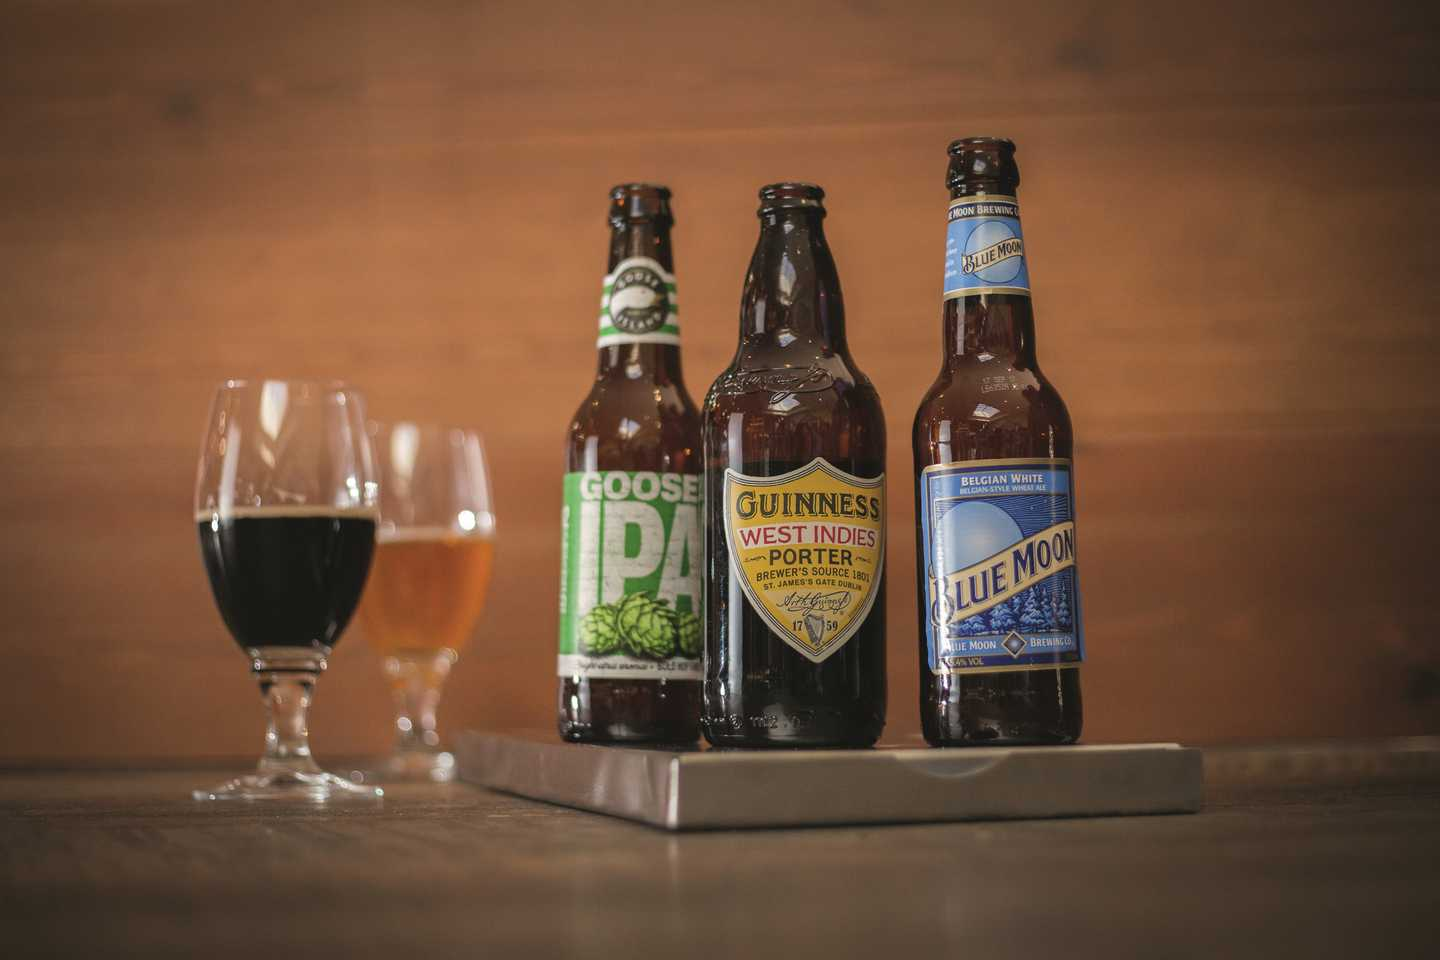 A selection of three beers and ale bottles with two beer glasses